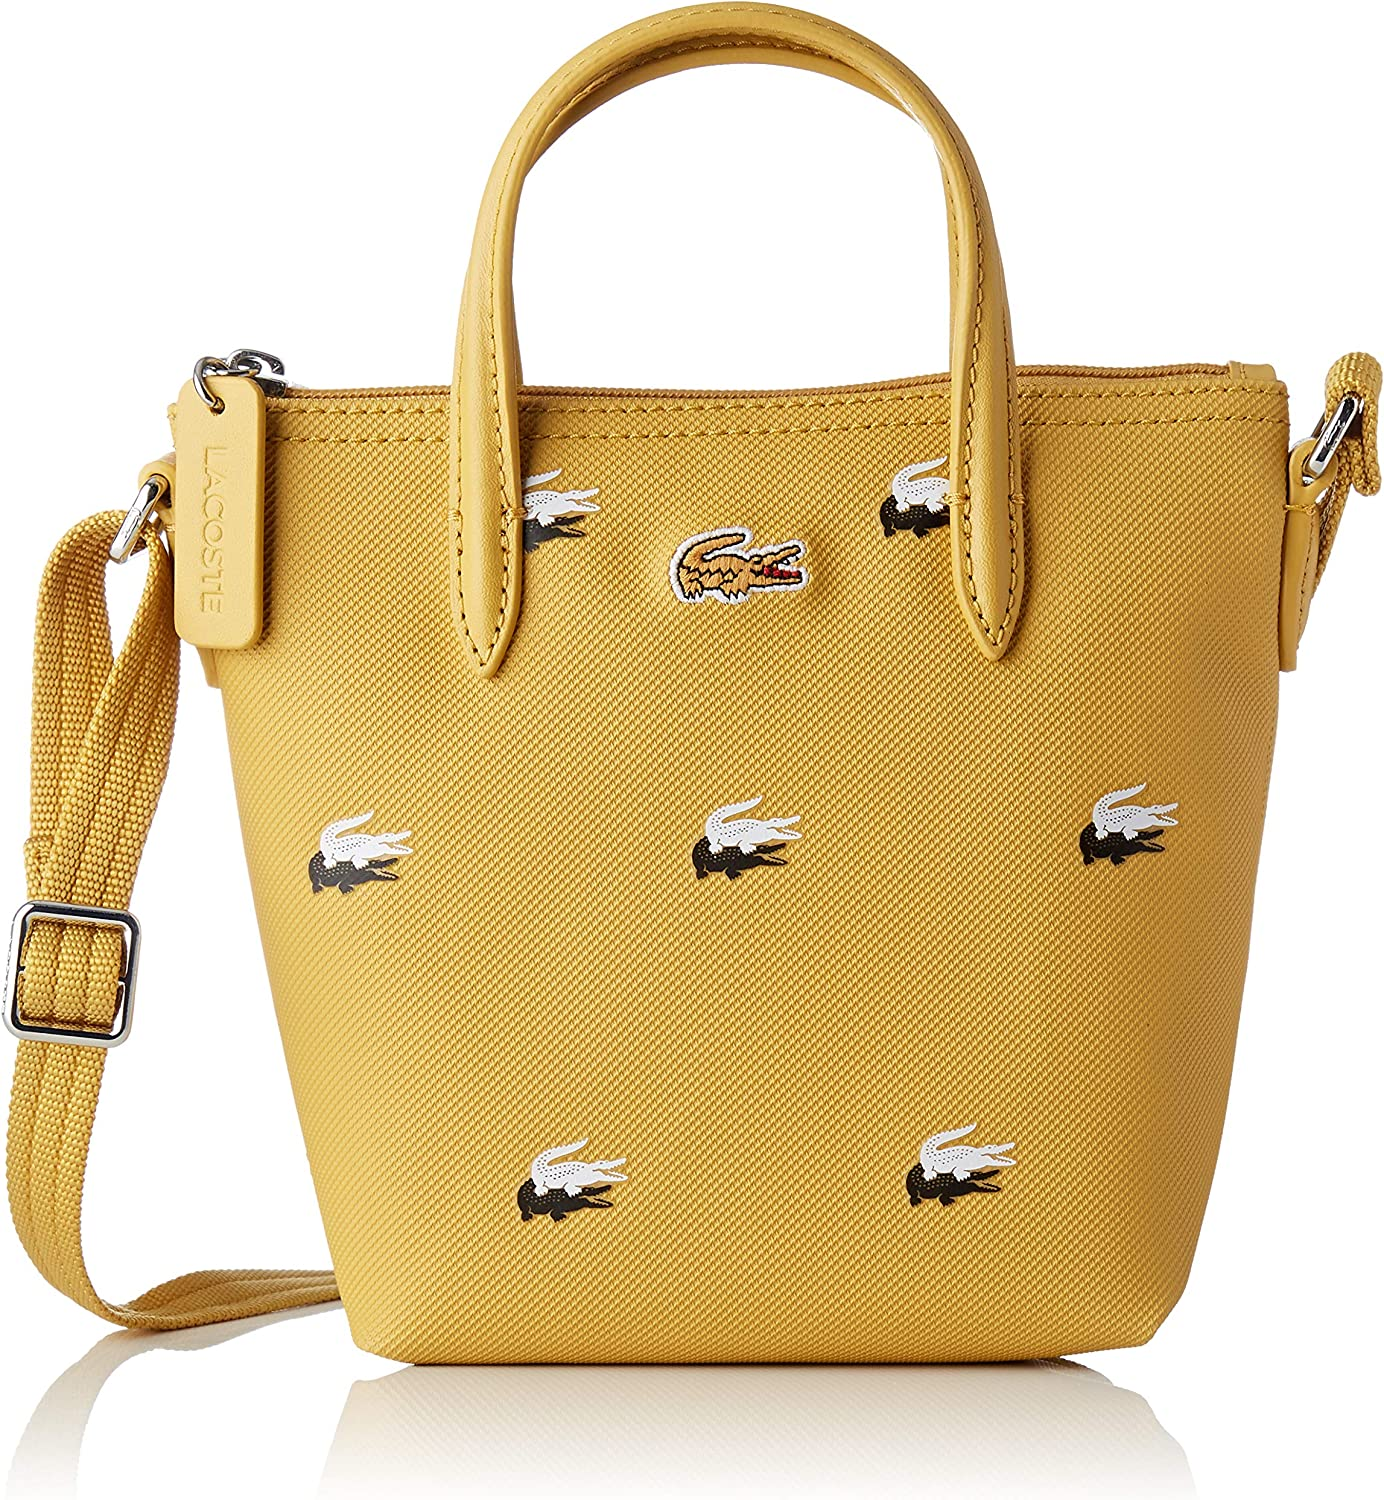 Lacoste - Nf2621cx, Bolsos totes Mujer, Amarillo (Mineral Yellow ...